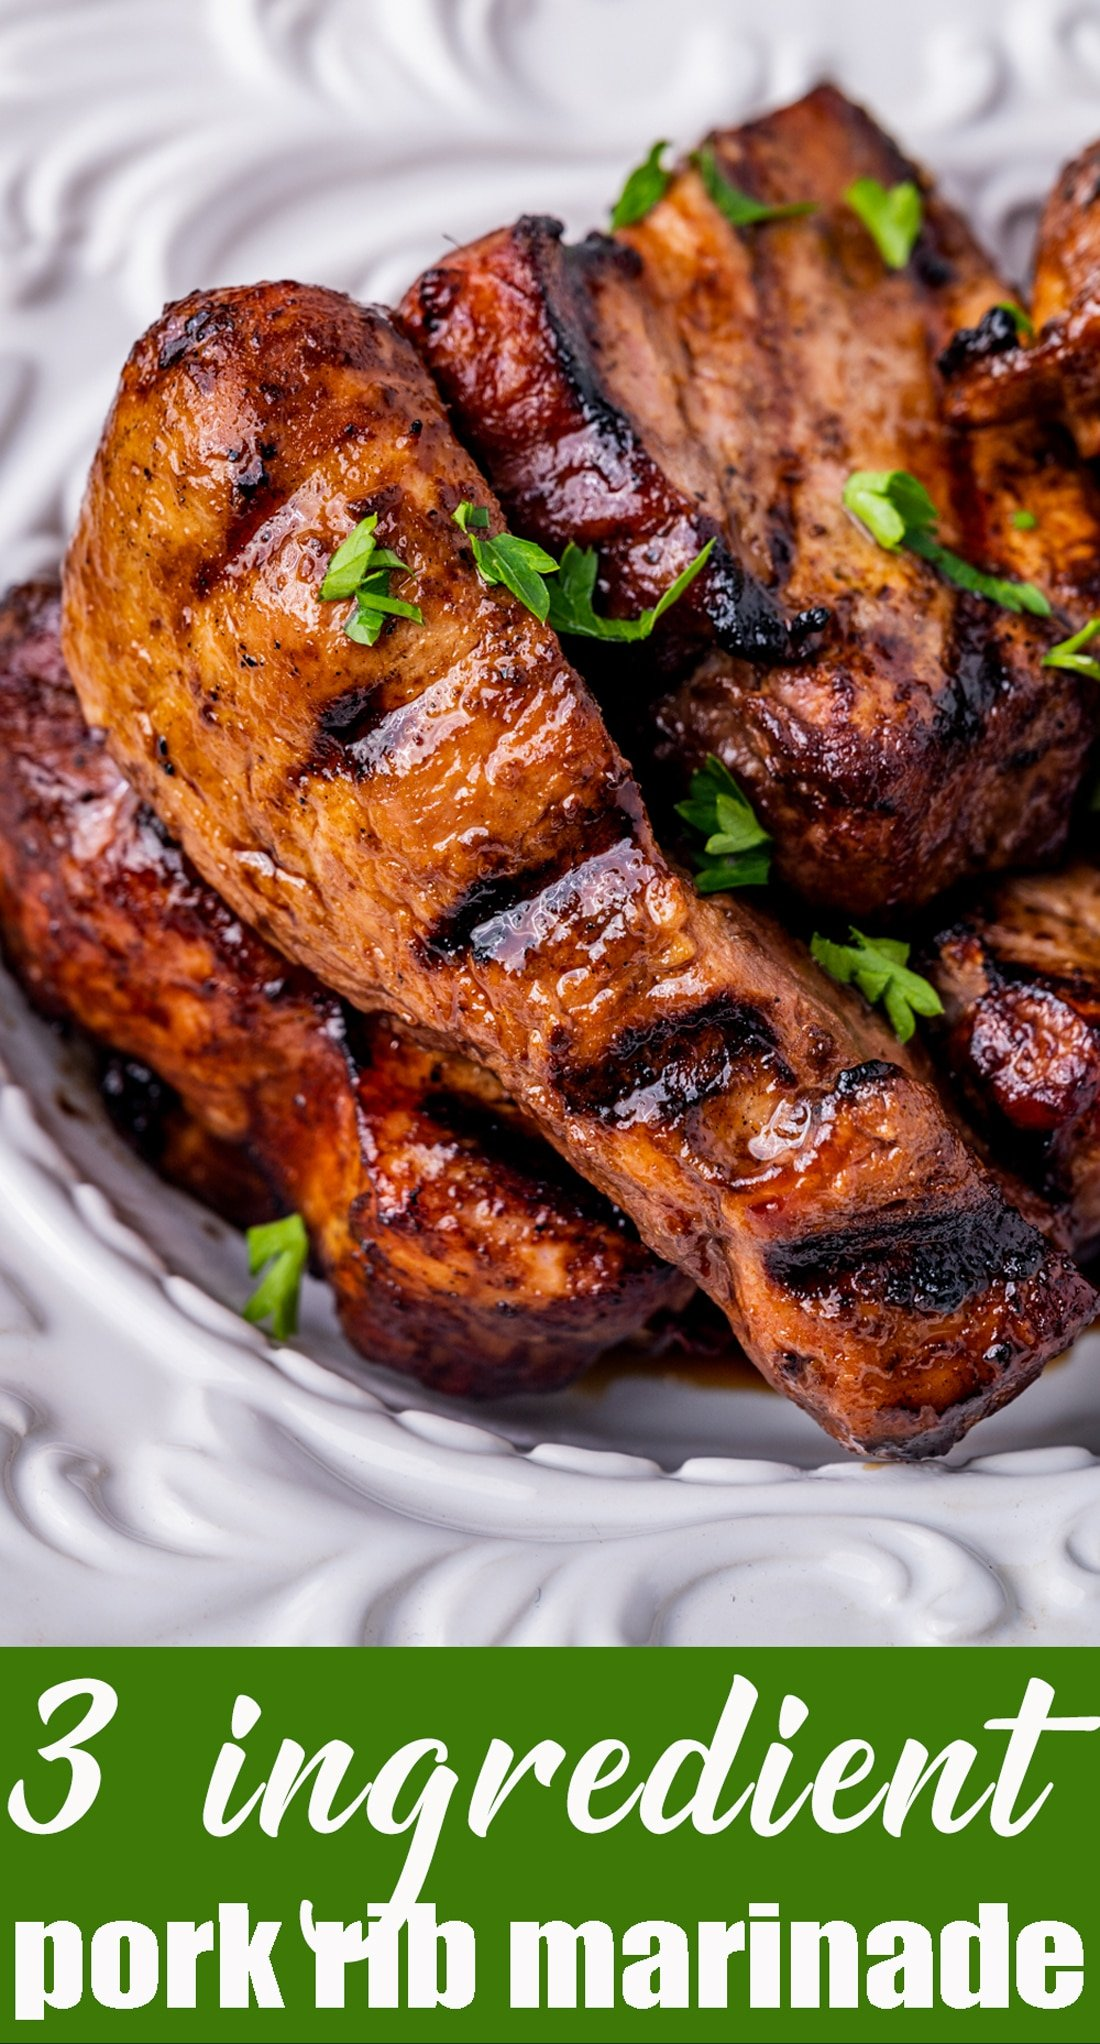 A simple 3 Ingredient Pork Rib Marinade to make your cookout quick and easy. This no-fuss marinade sauce recipe is ready in under 30 minutes! via @tastesoflizzyt